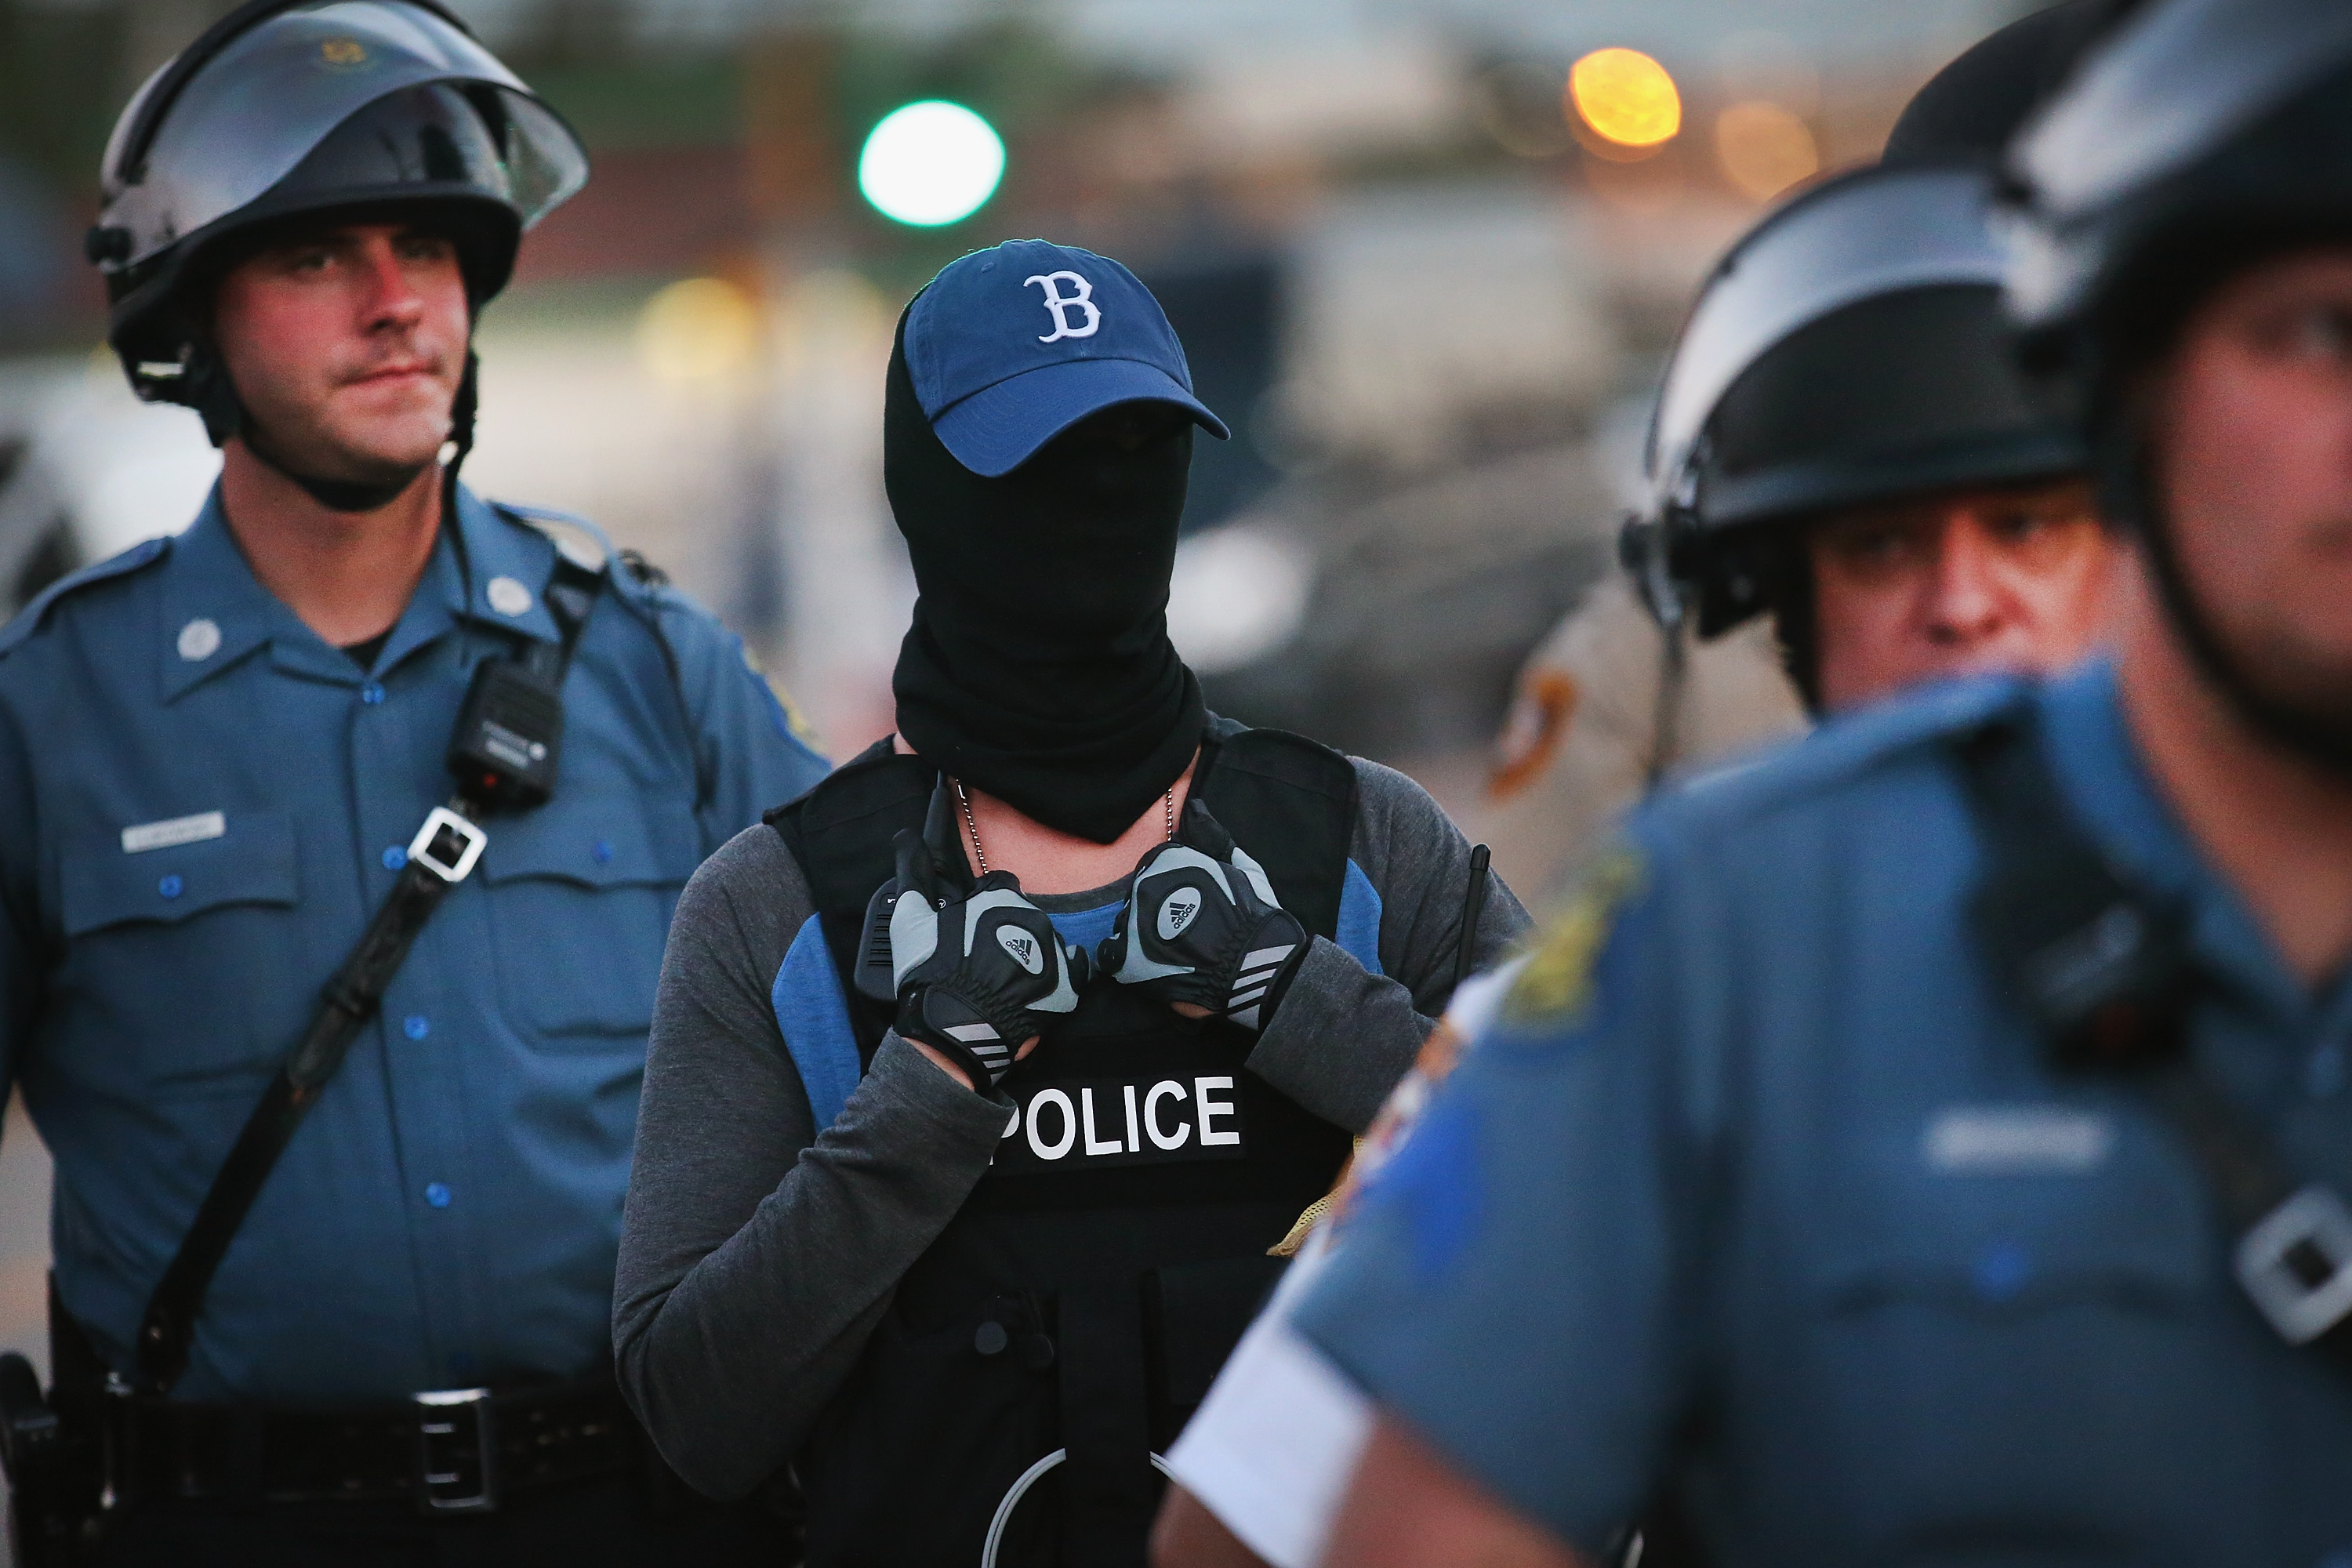 A police officer standing watch as demonstrators protest the shooting death of teenager Michael Brown conceals his/her identity on August 13, 2014 in Ferguson, Missouri.